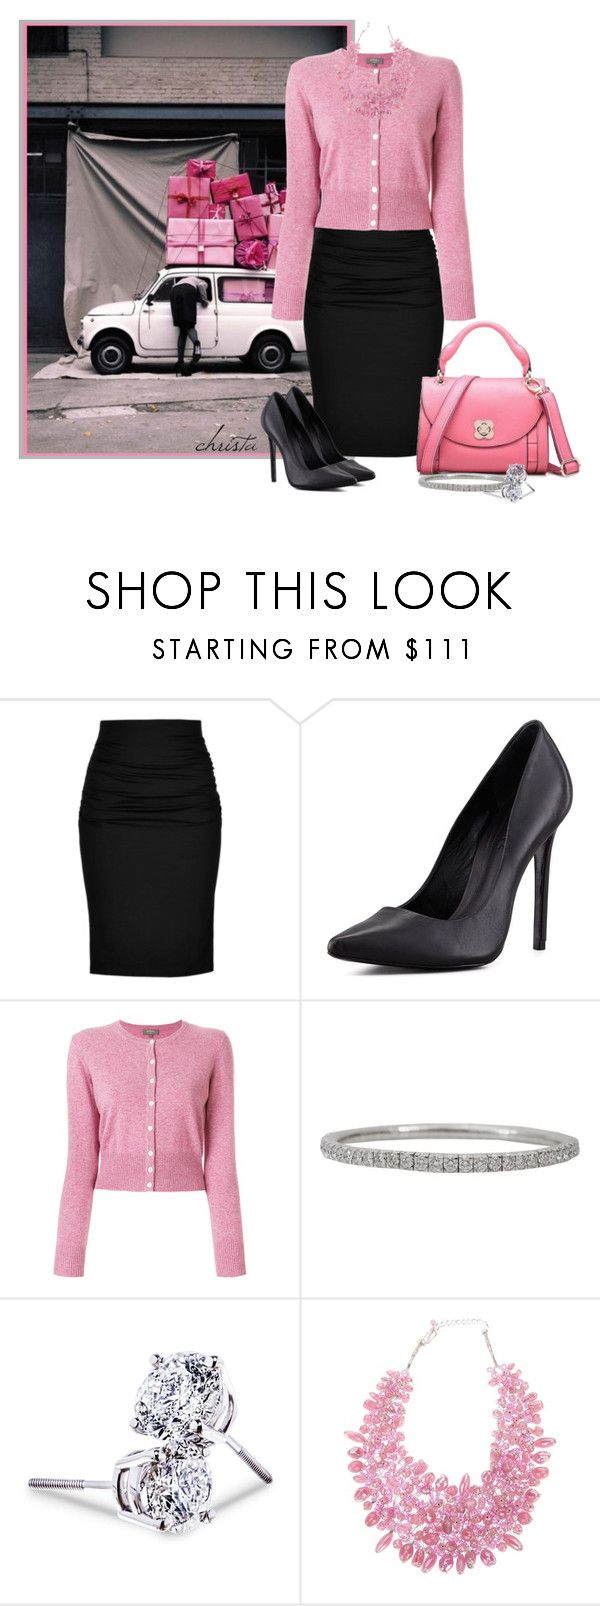 """A Pink Packaged Christmas"" by christa72 ❤ liked on Polyvore featuring Paule Ka, Schutz, N.Peal, Mattia Cielo, Lord & Taylor and TWIST'N'SCOUT"